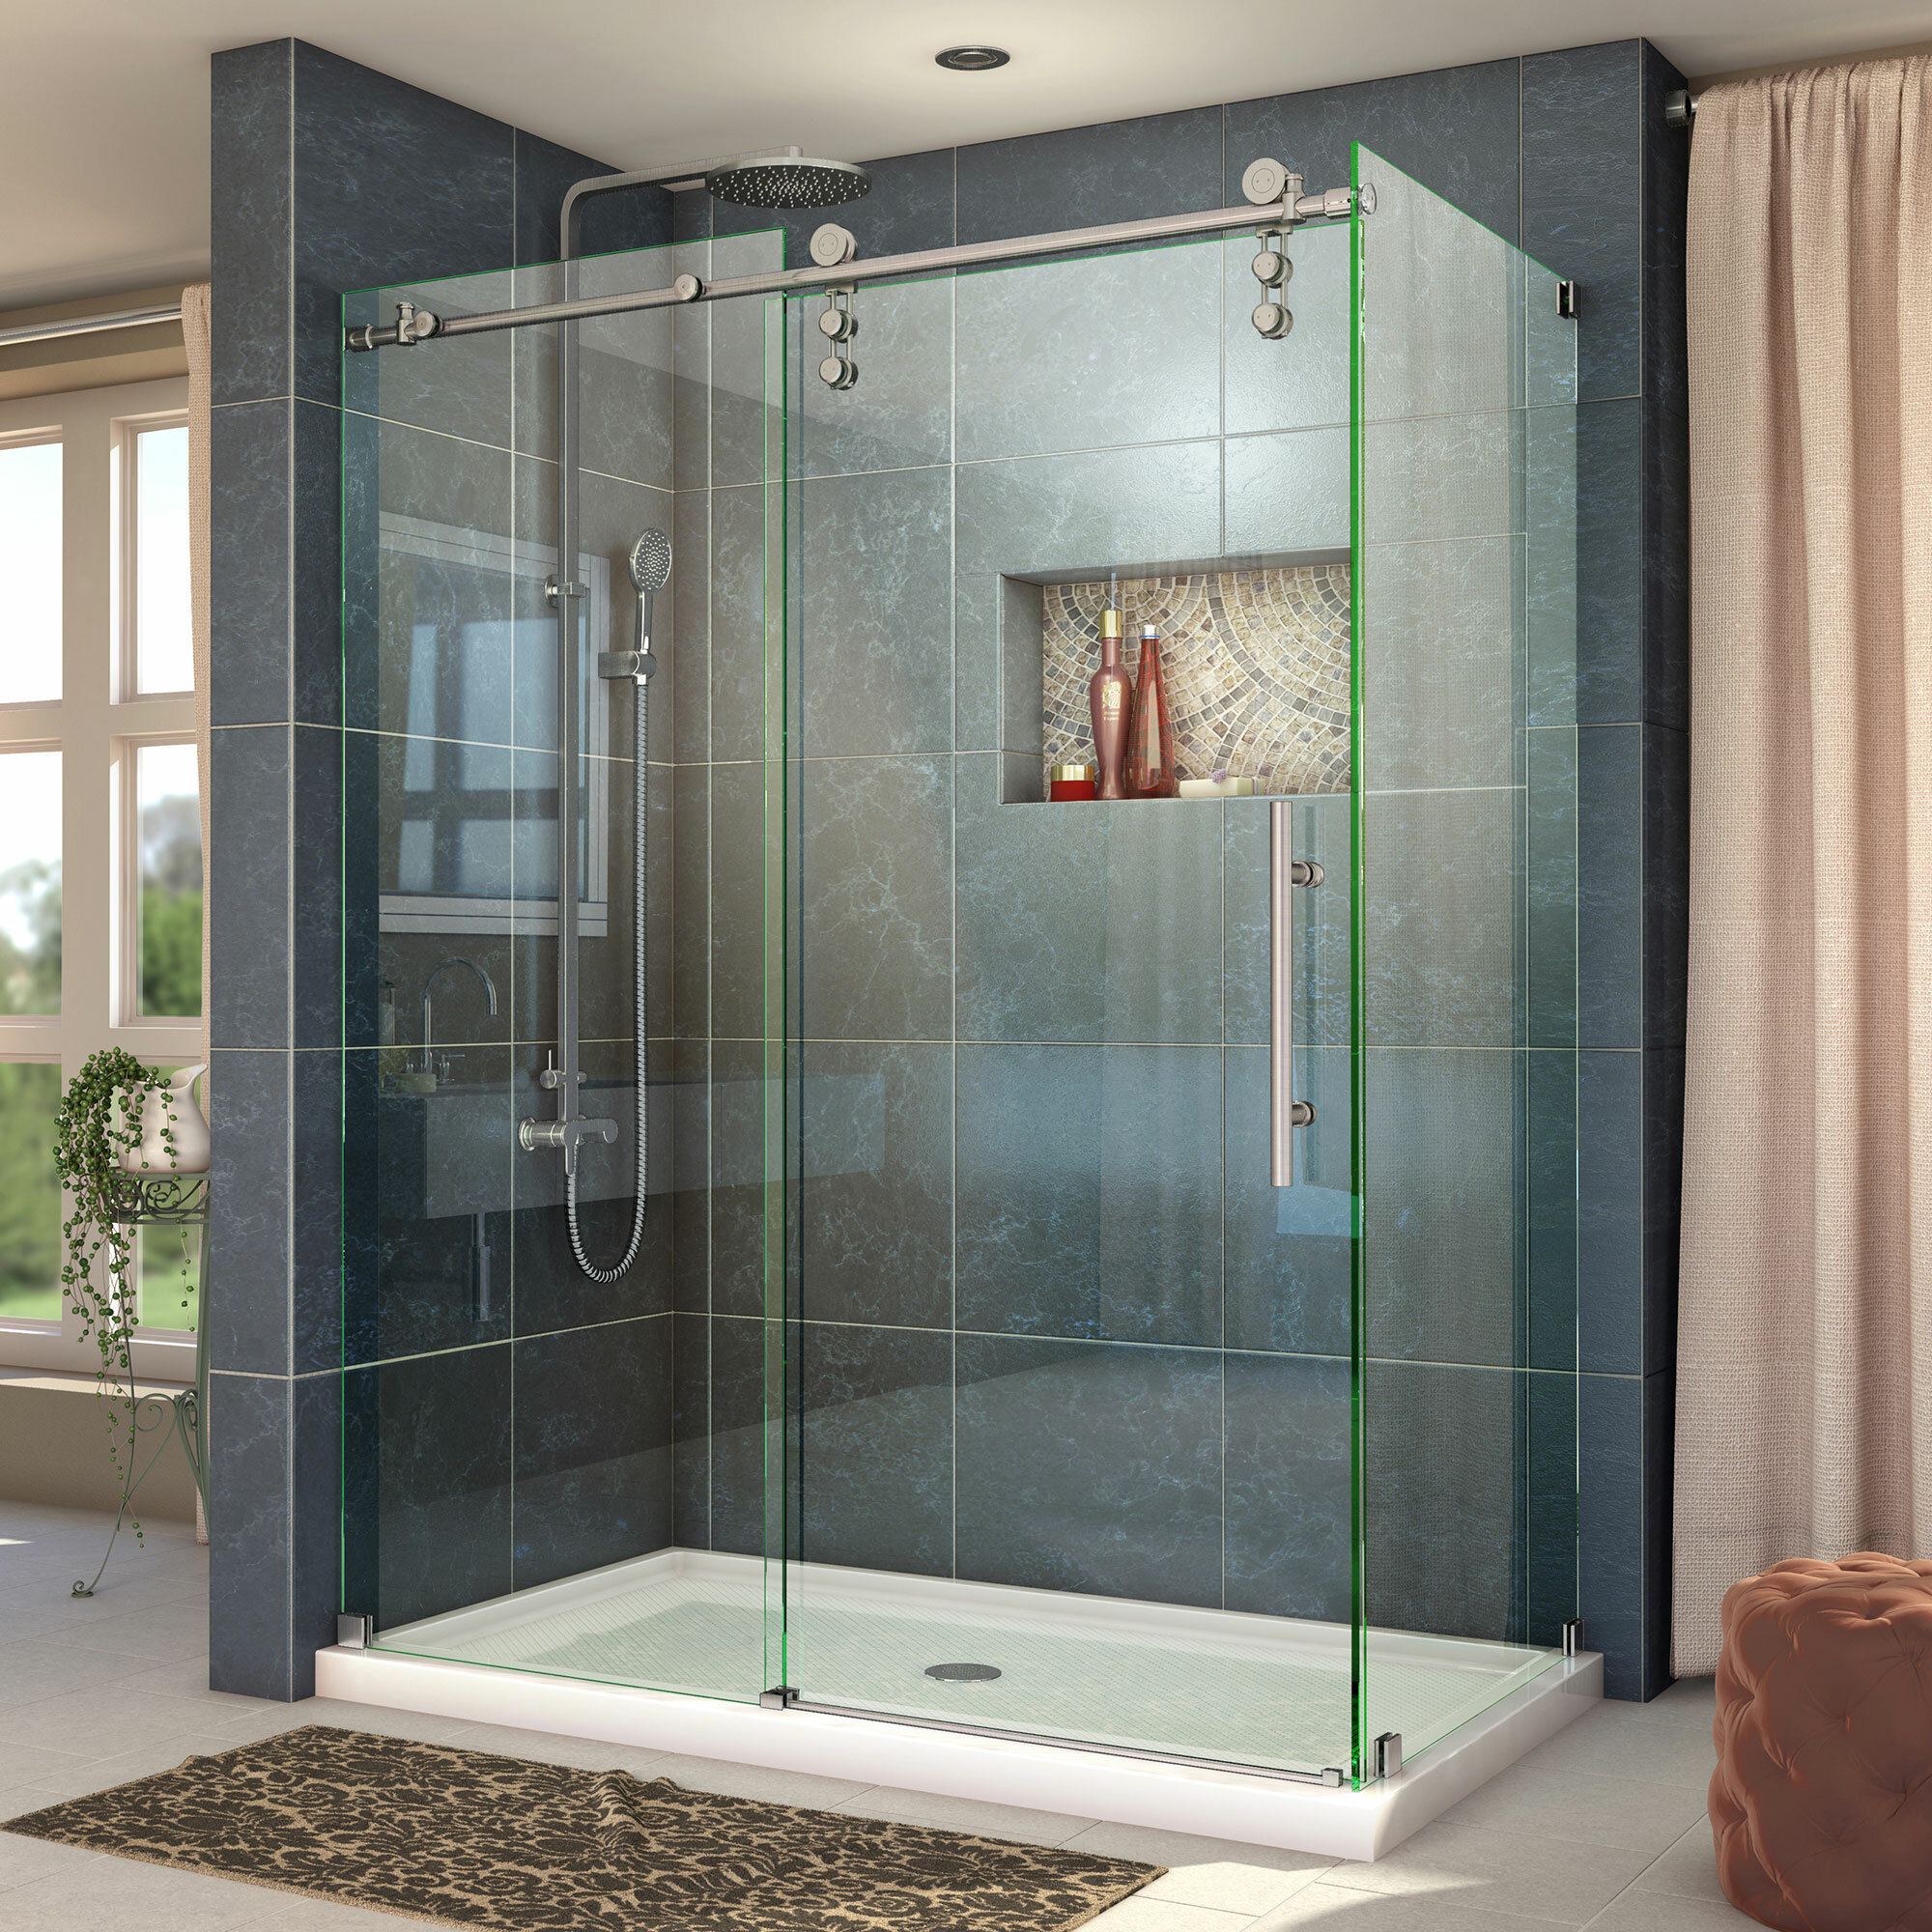 Enigma Z 60 38 X 76 Single Sliding Frameless Shower Door With Clear Max Technology